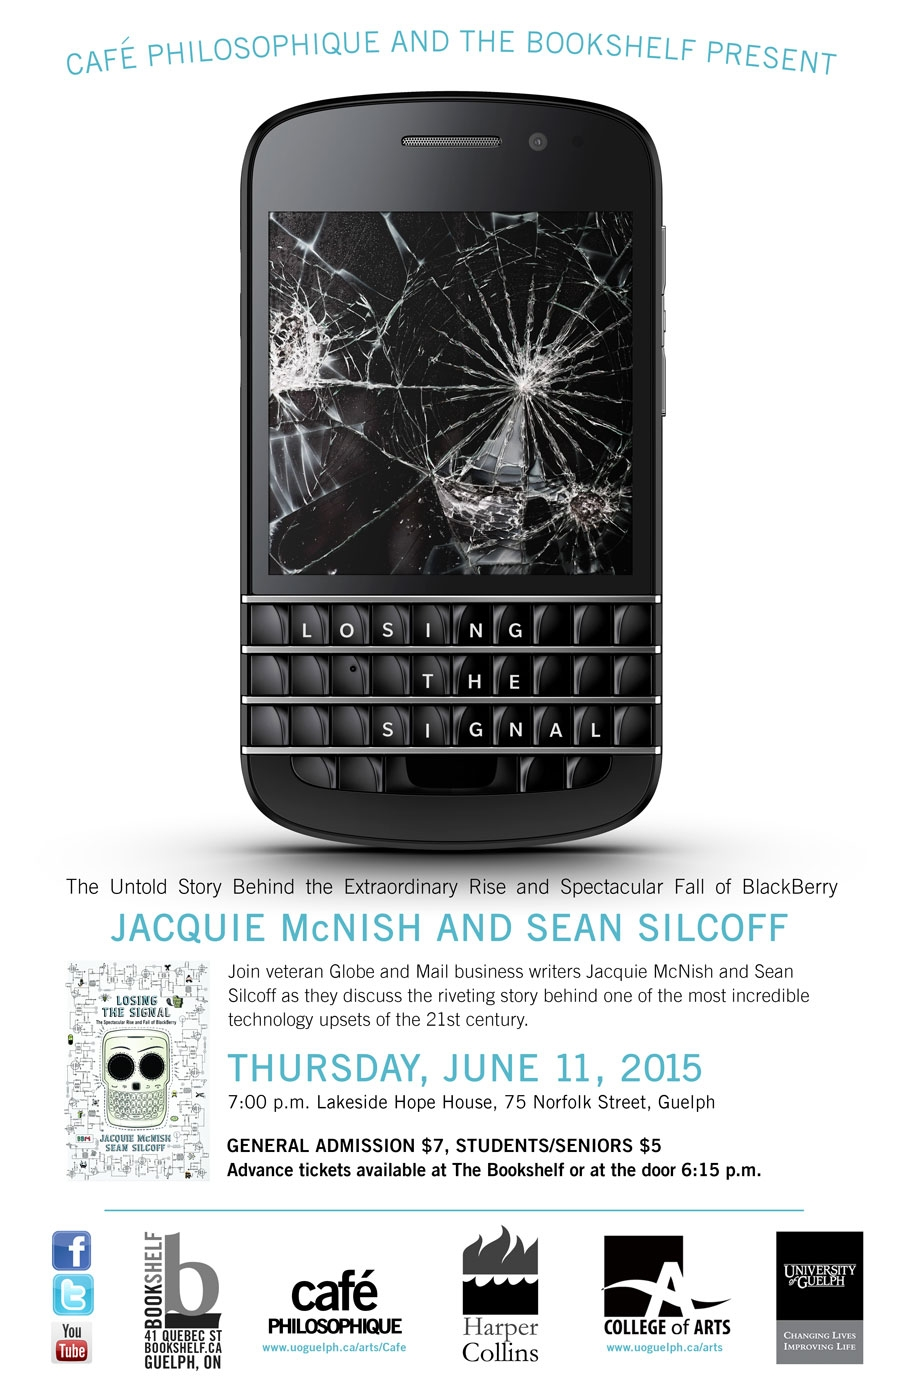 death of blackberry poster